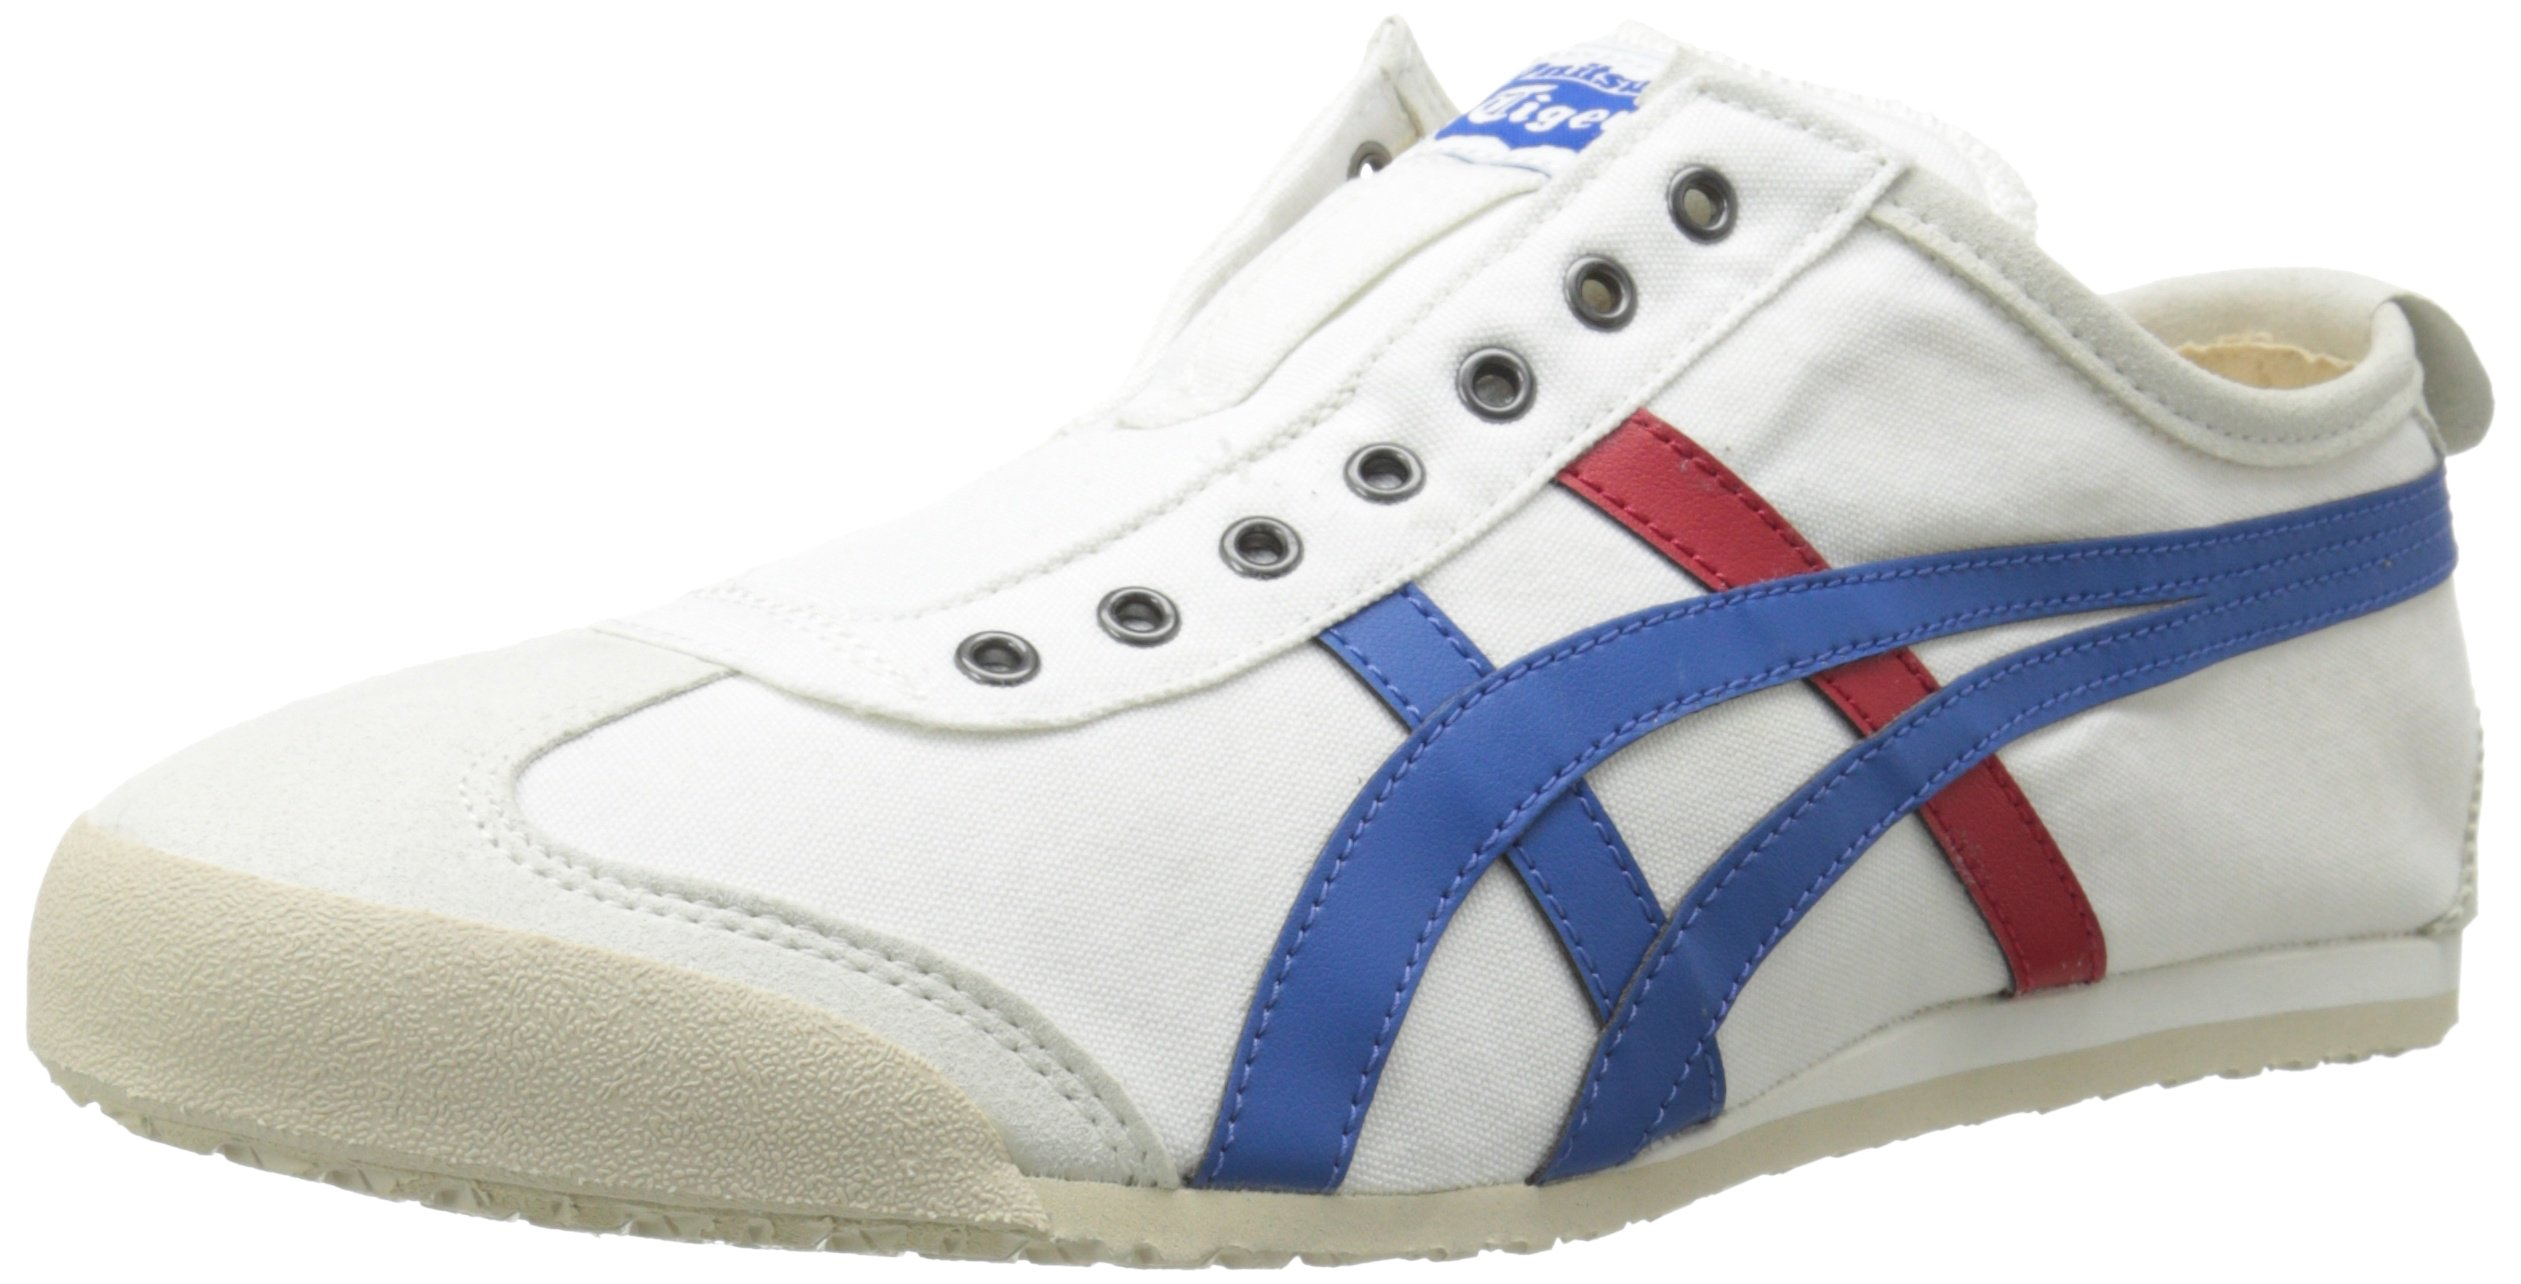 Onitsuka Tiger Unisex Mexico 66 Slip-on Shoes D3K0N, White/Tricolor, 9.5 M US by Onitsuka Tiger (Image #1)